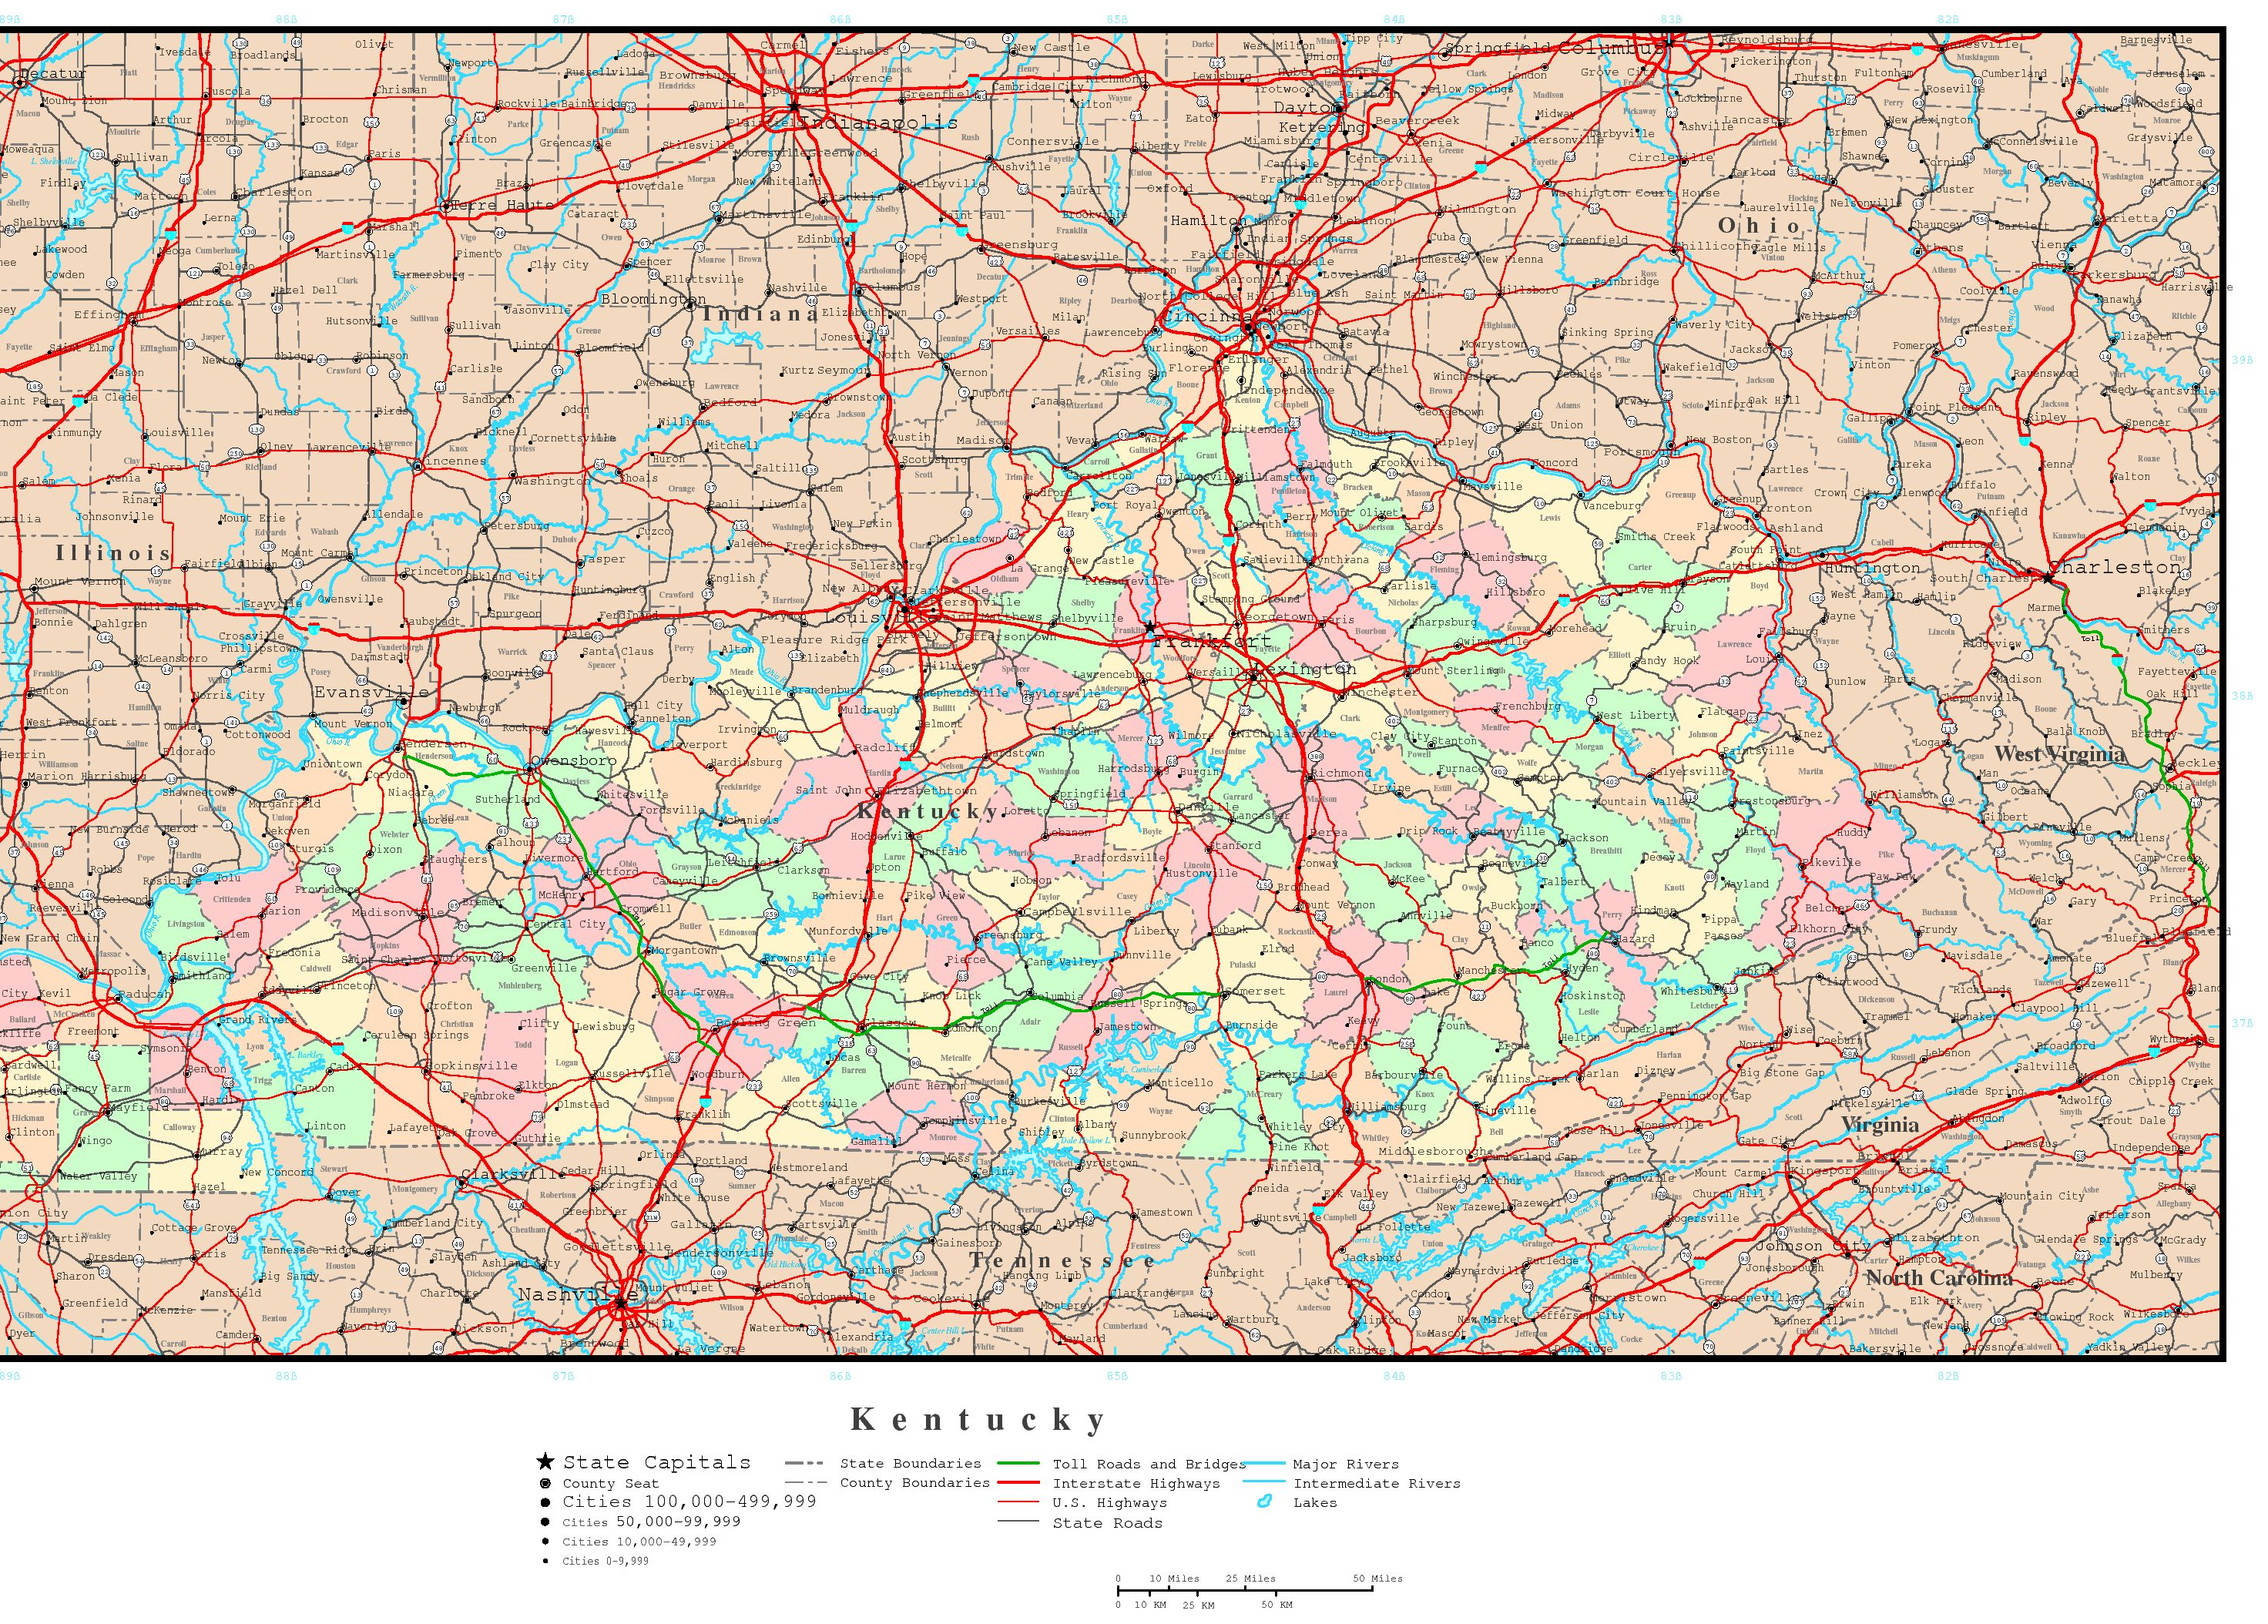 Kentucky Road Map Afputracom - Us map of kentucky